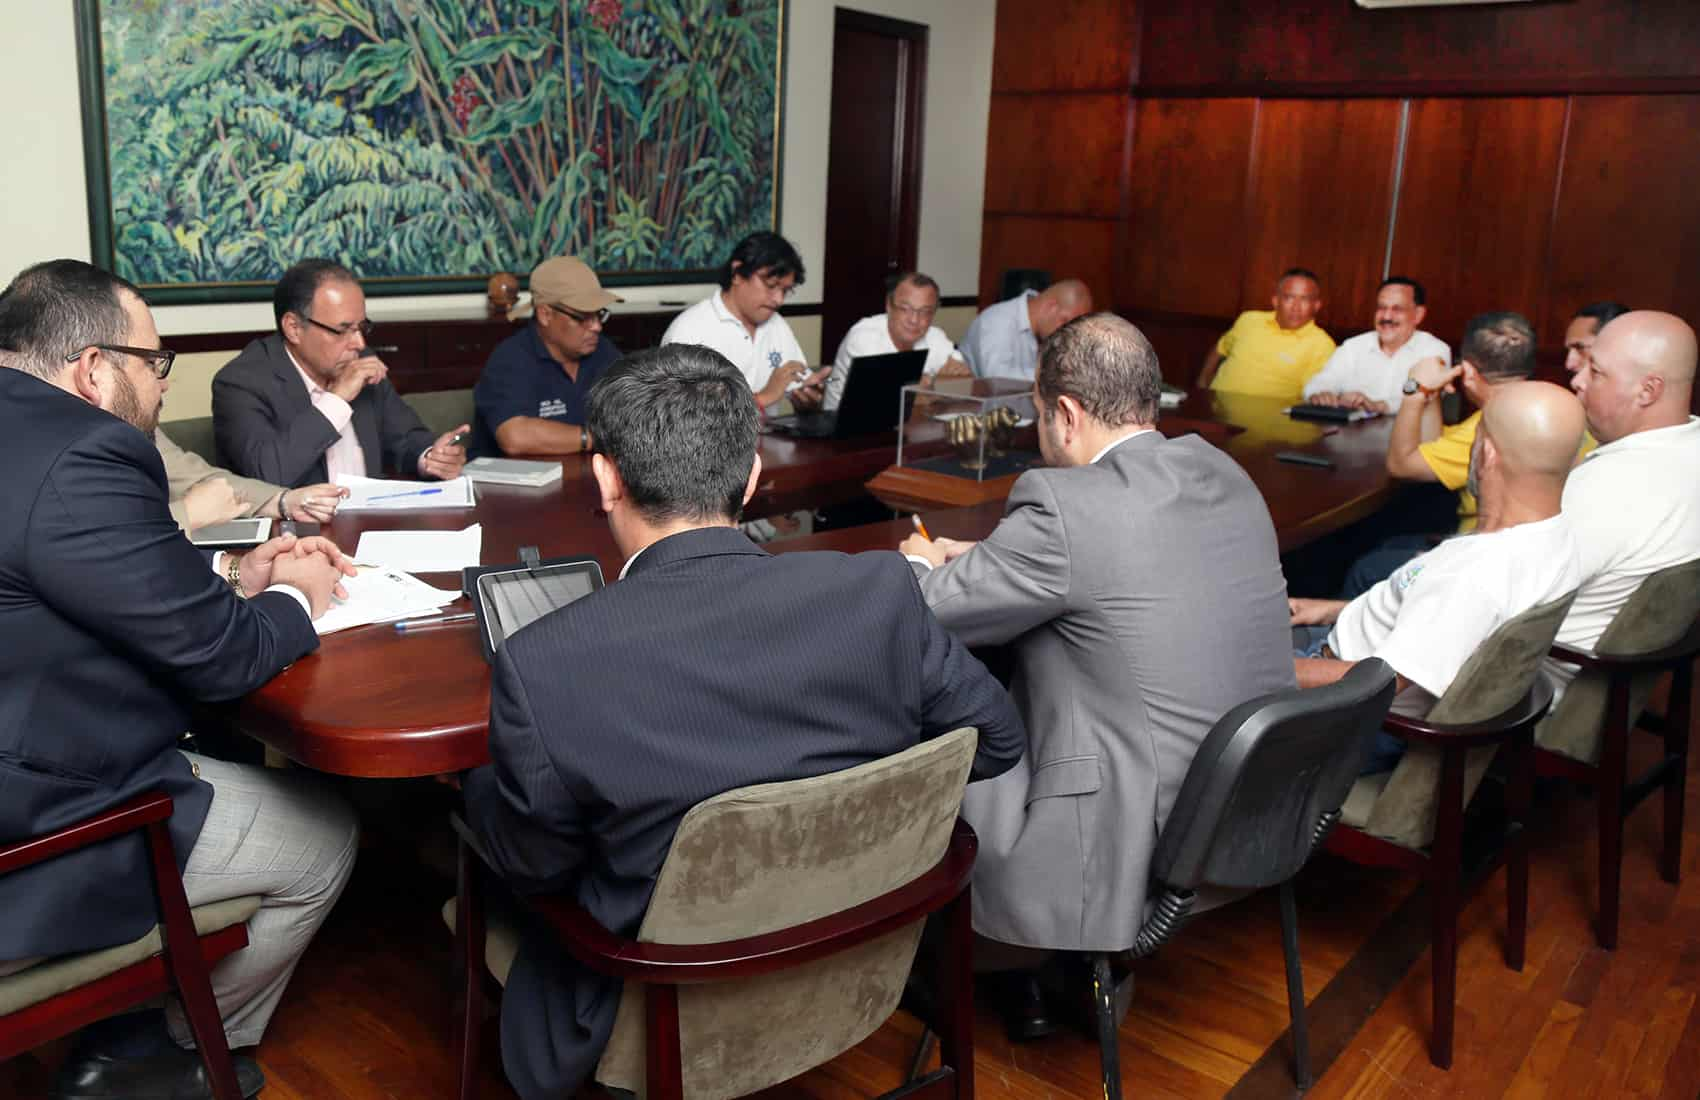 Costa Rica strike: Patria Justa, gov't meeting.